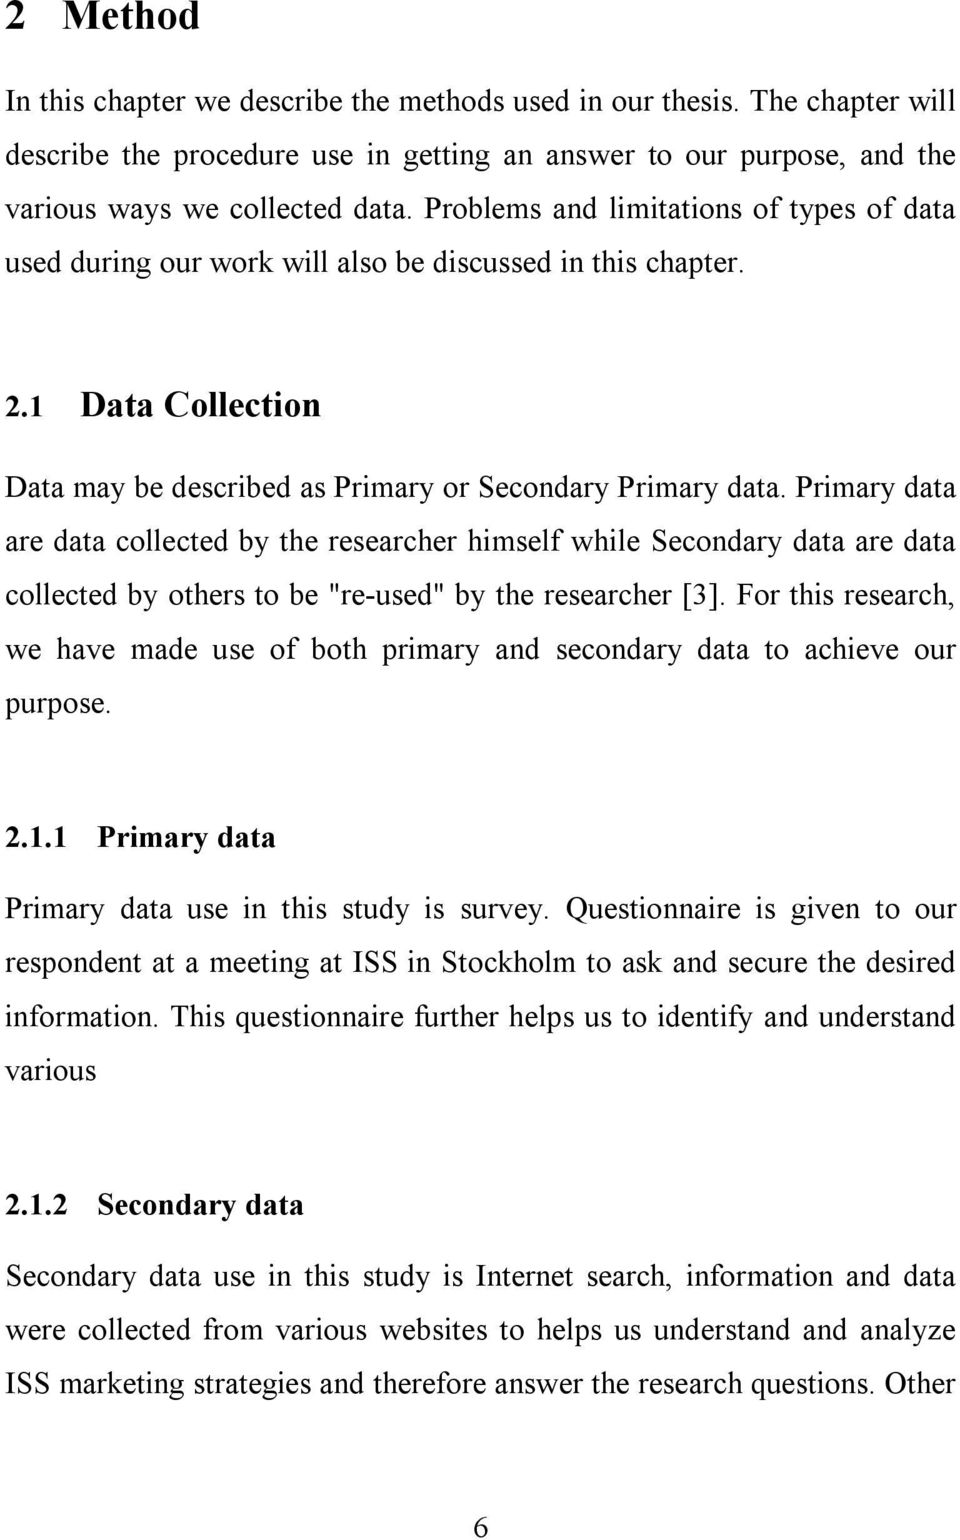 "Primary data are data collected by the researcher himself while Secondary data are data collected by others to be ""re-used"" by the researcher [3]."